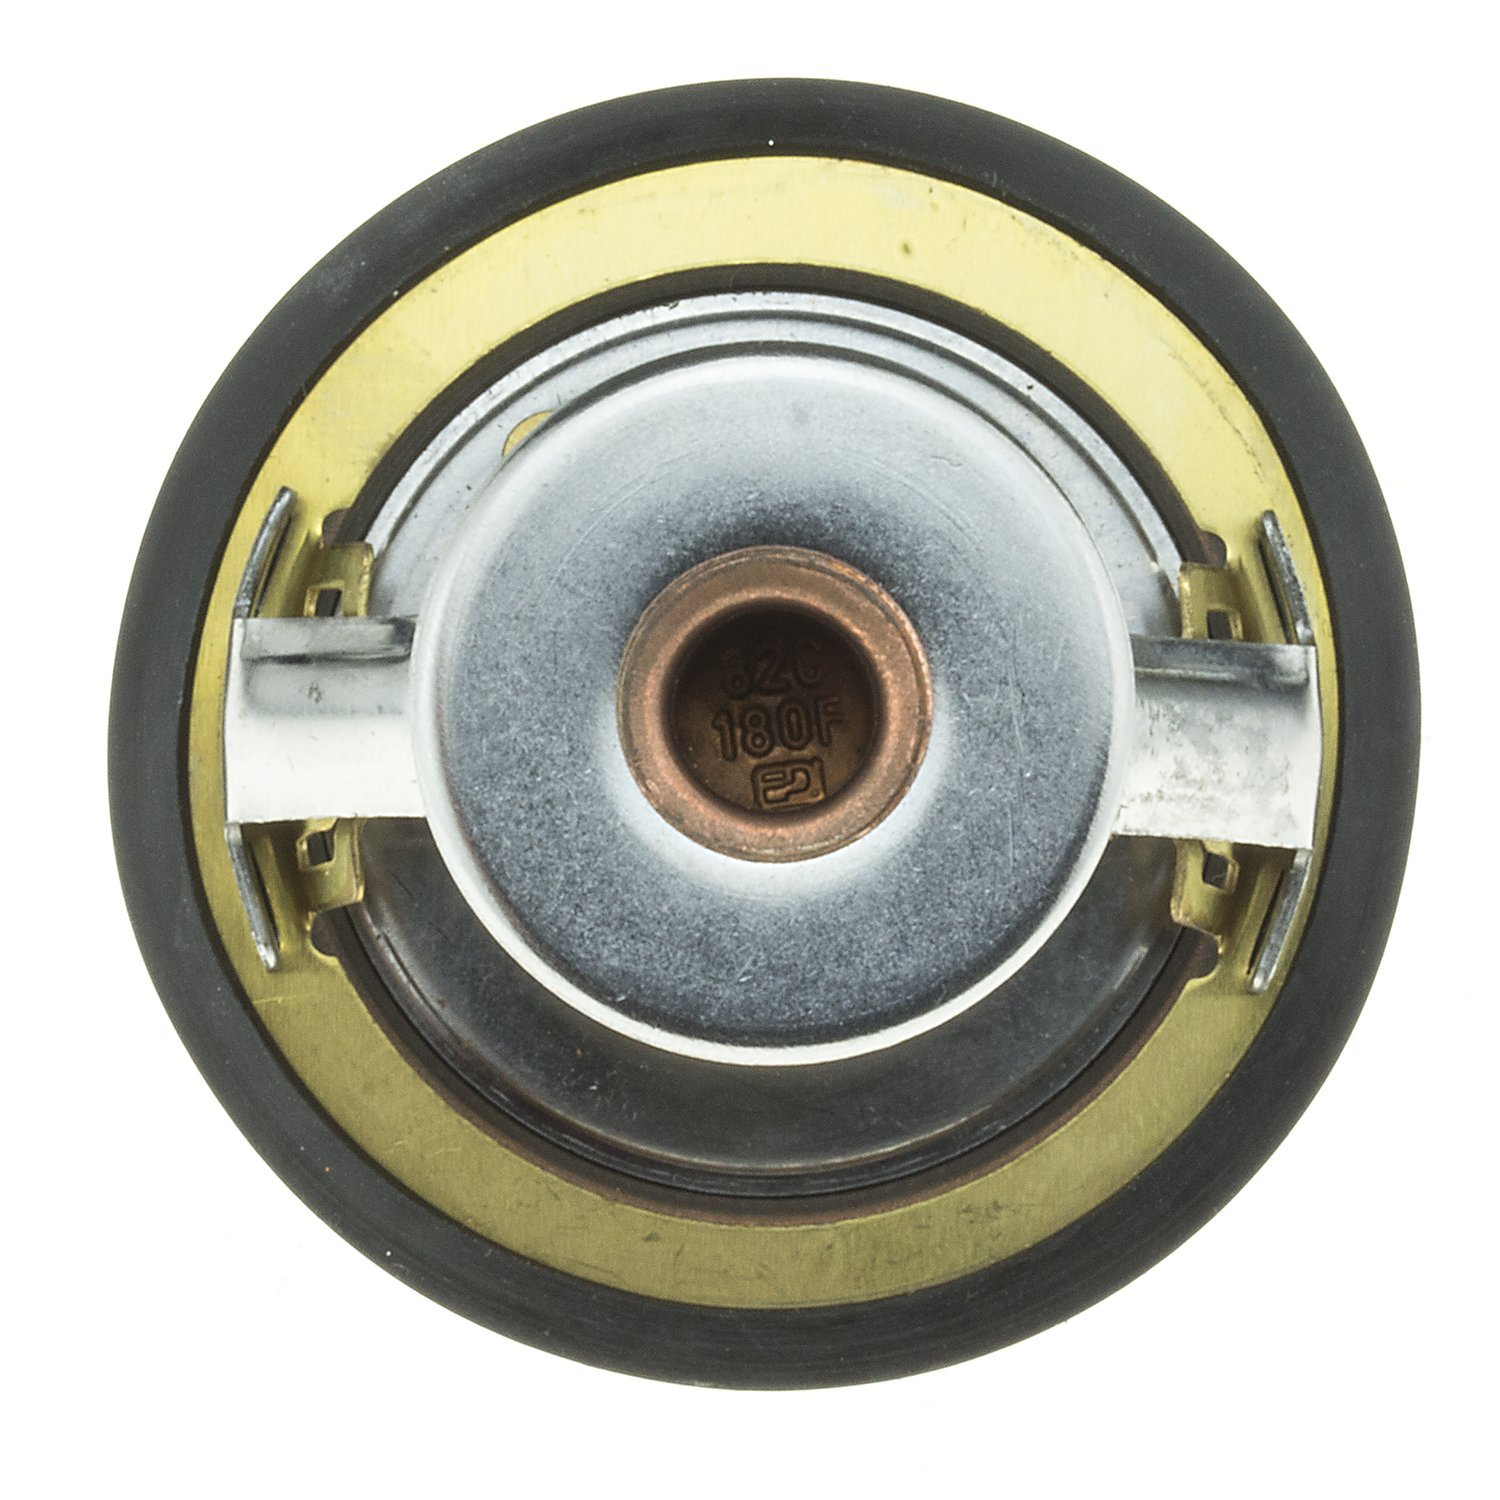 MotoRad 7307-180 Fail-Safe Thermostat with Seal